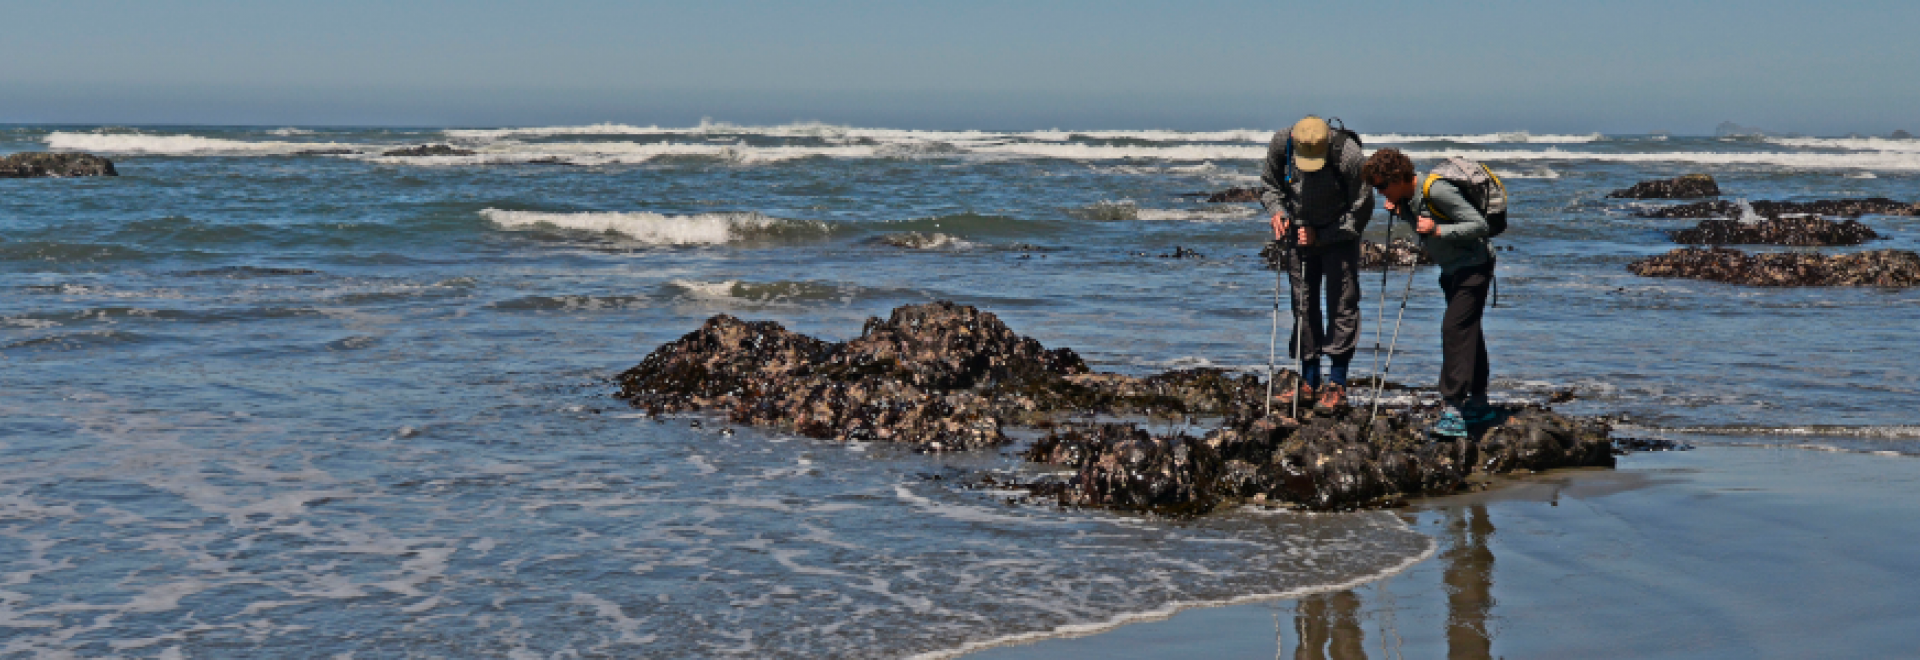 Two people tidepooling on Enderts Beach near Redwood National and State Parks - John Chao photo